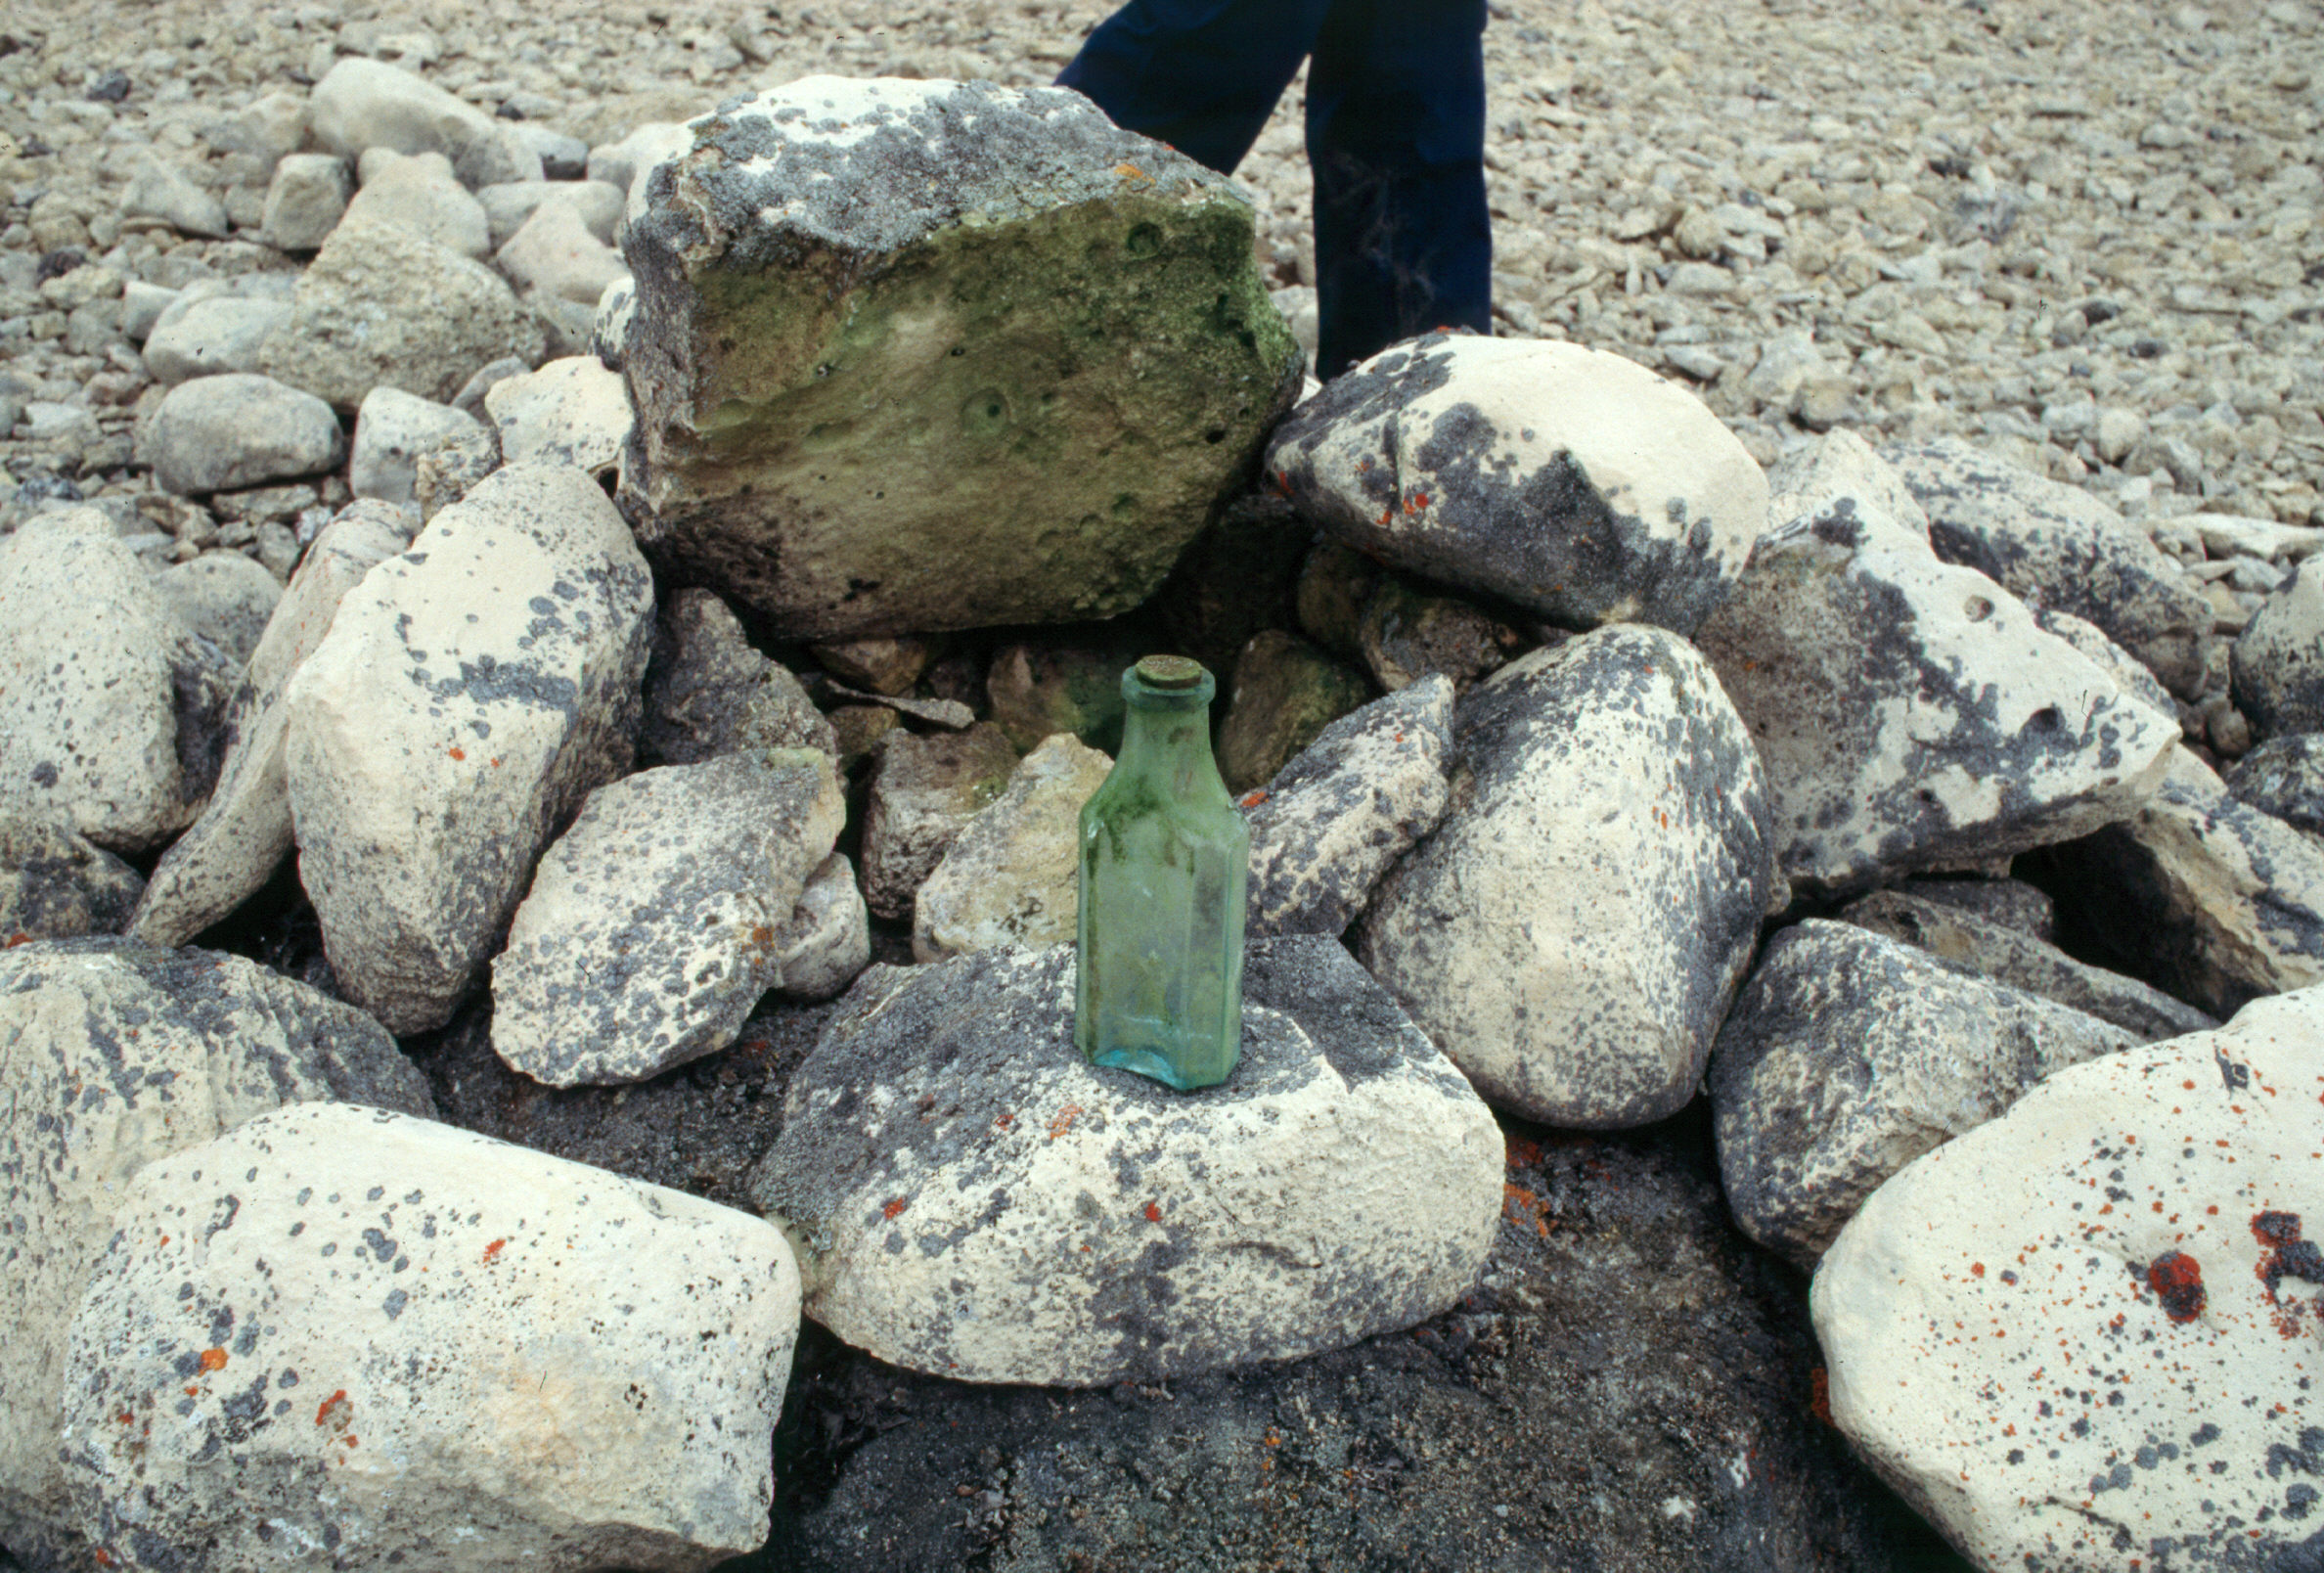 File:Bottle with Scwatka's note found in a cairn at Cape